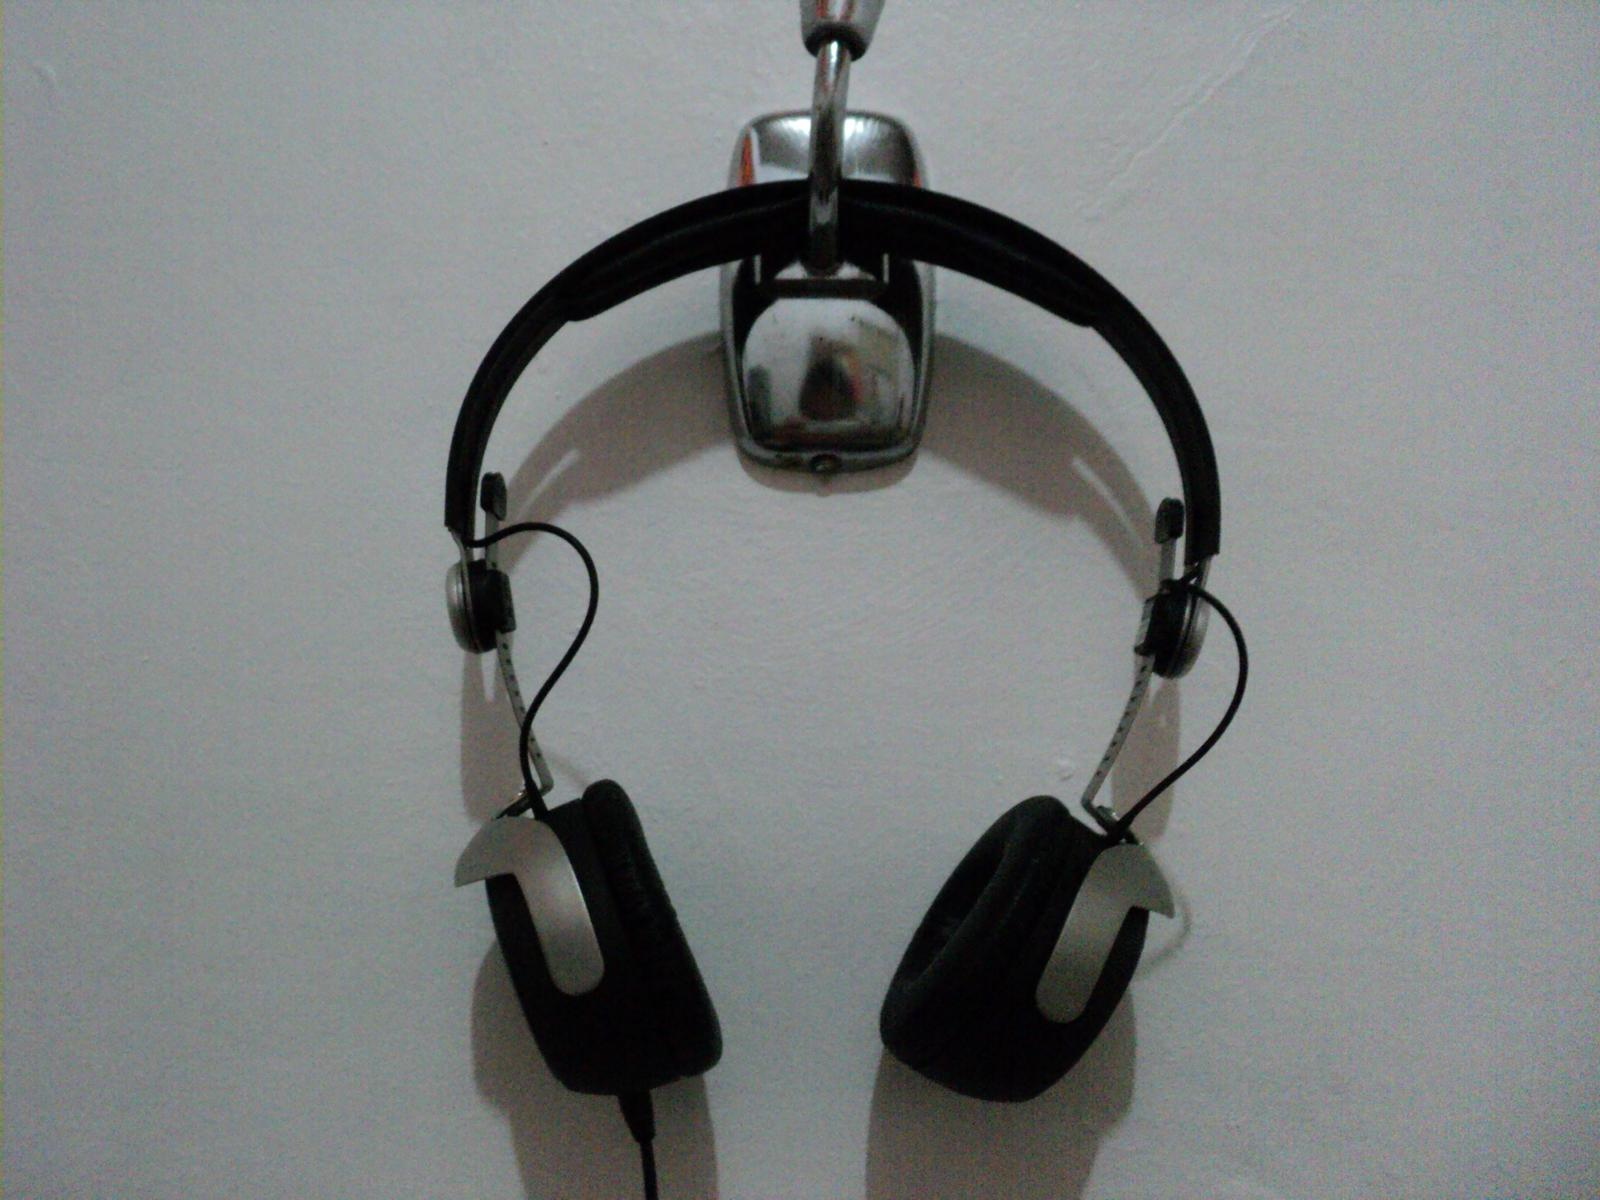 Beyerdynamic DT 1350 looks